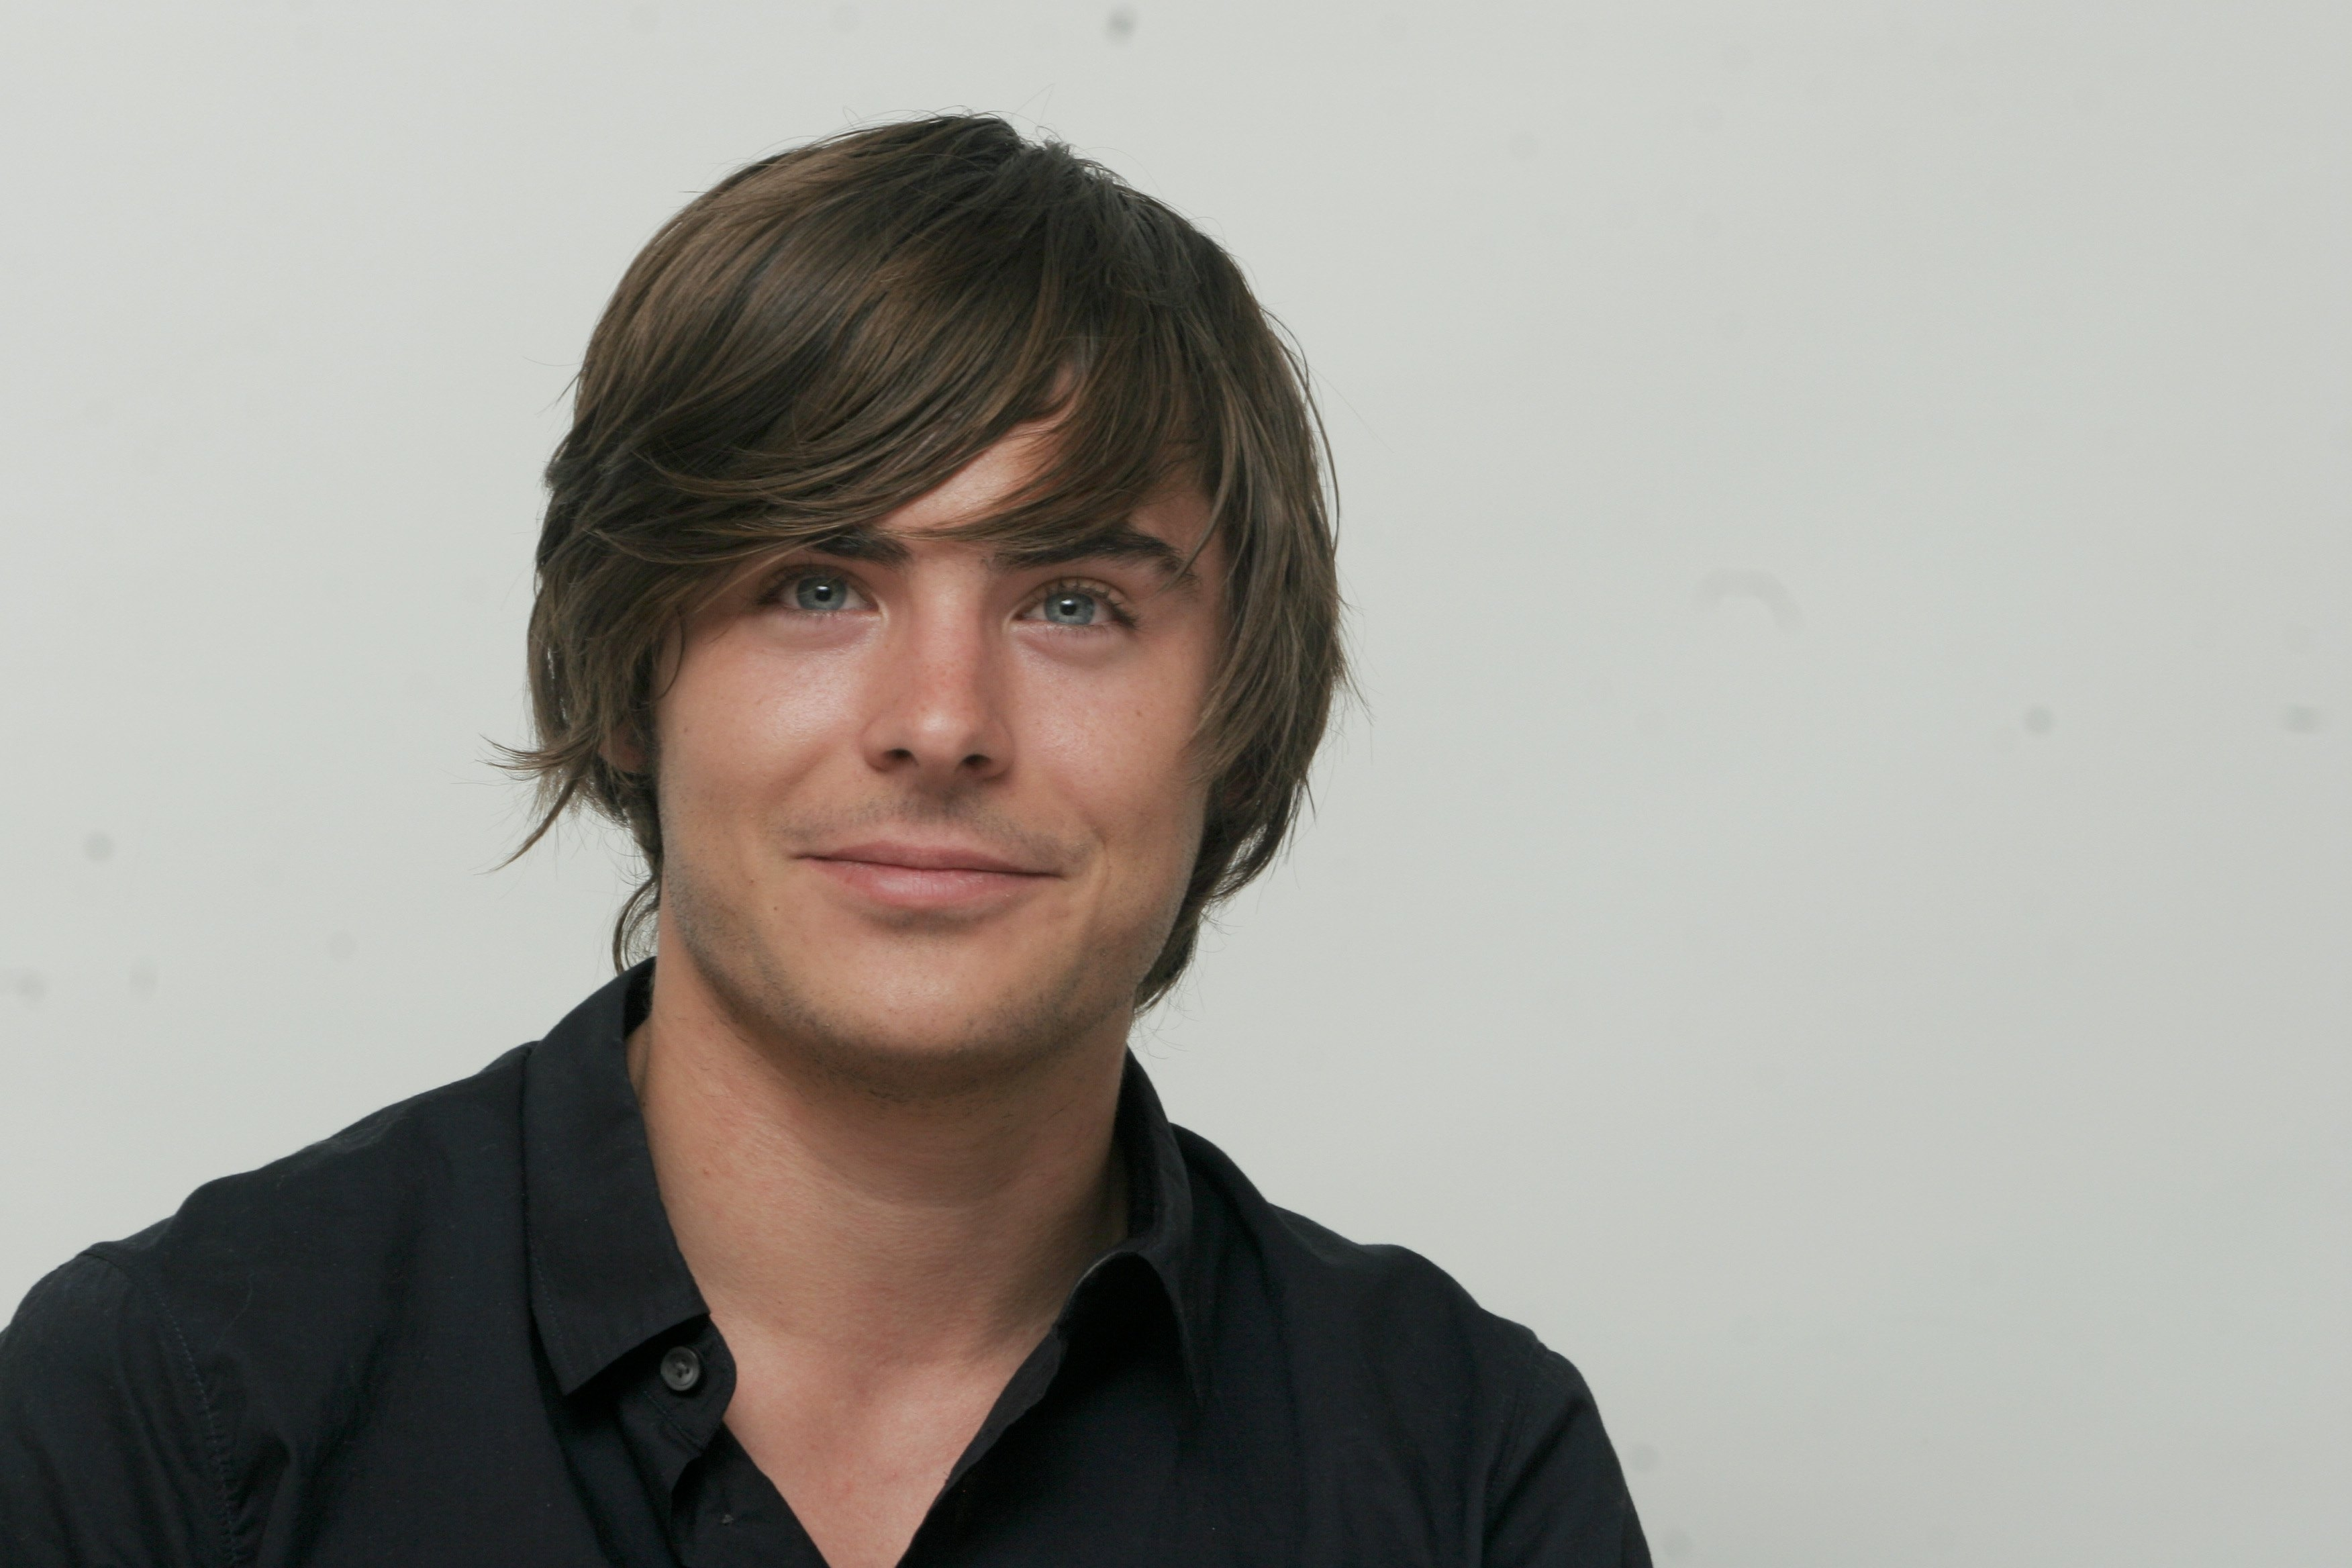 Zac Efron Wallpapers Pictures Images